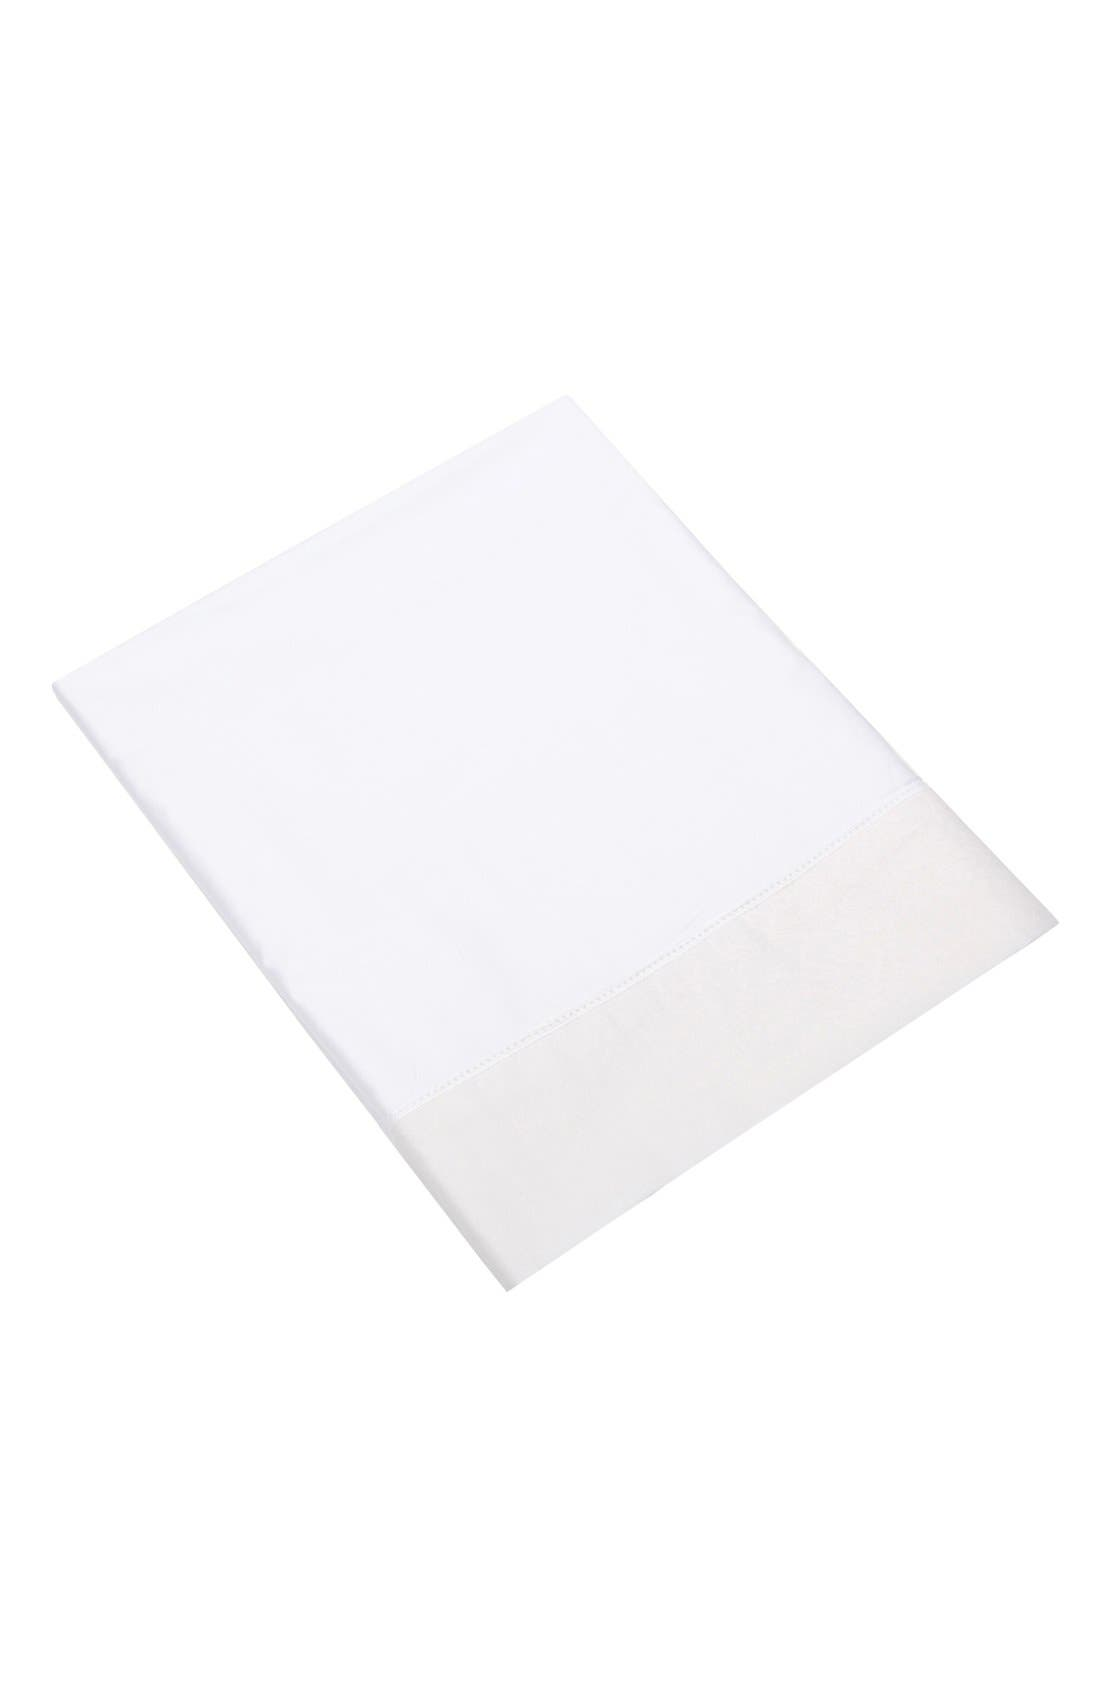 Main Image - Blissliving Home 'Mayfair White' Queen Flat Sheet